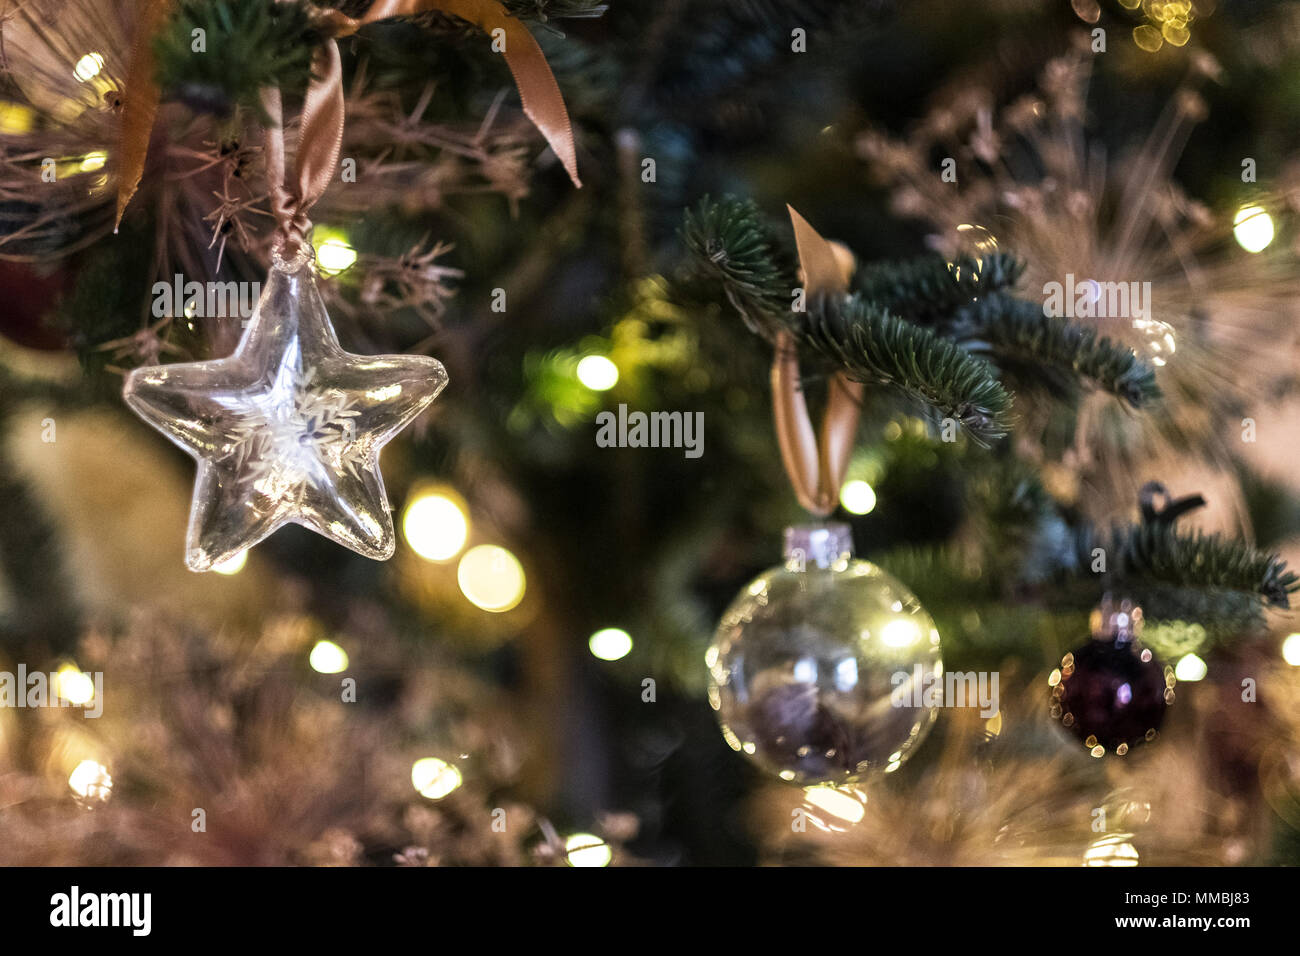 Close up of star shaped glass ornament and bauble on Christmas Tree. - Stock Image